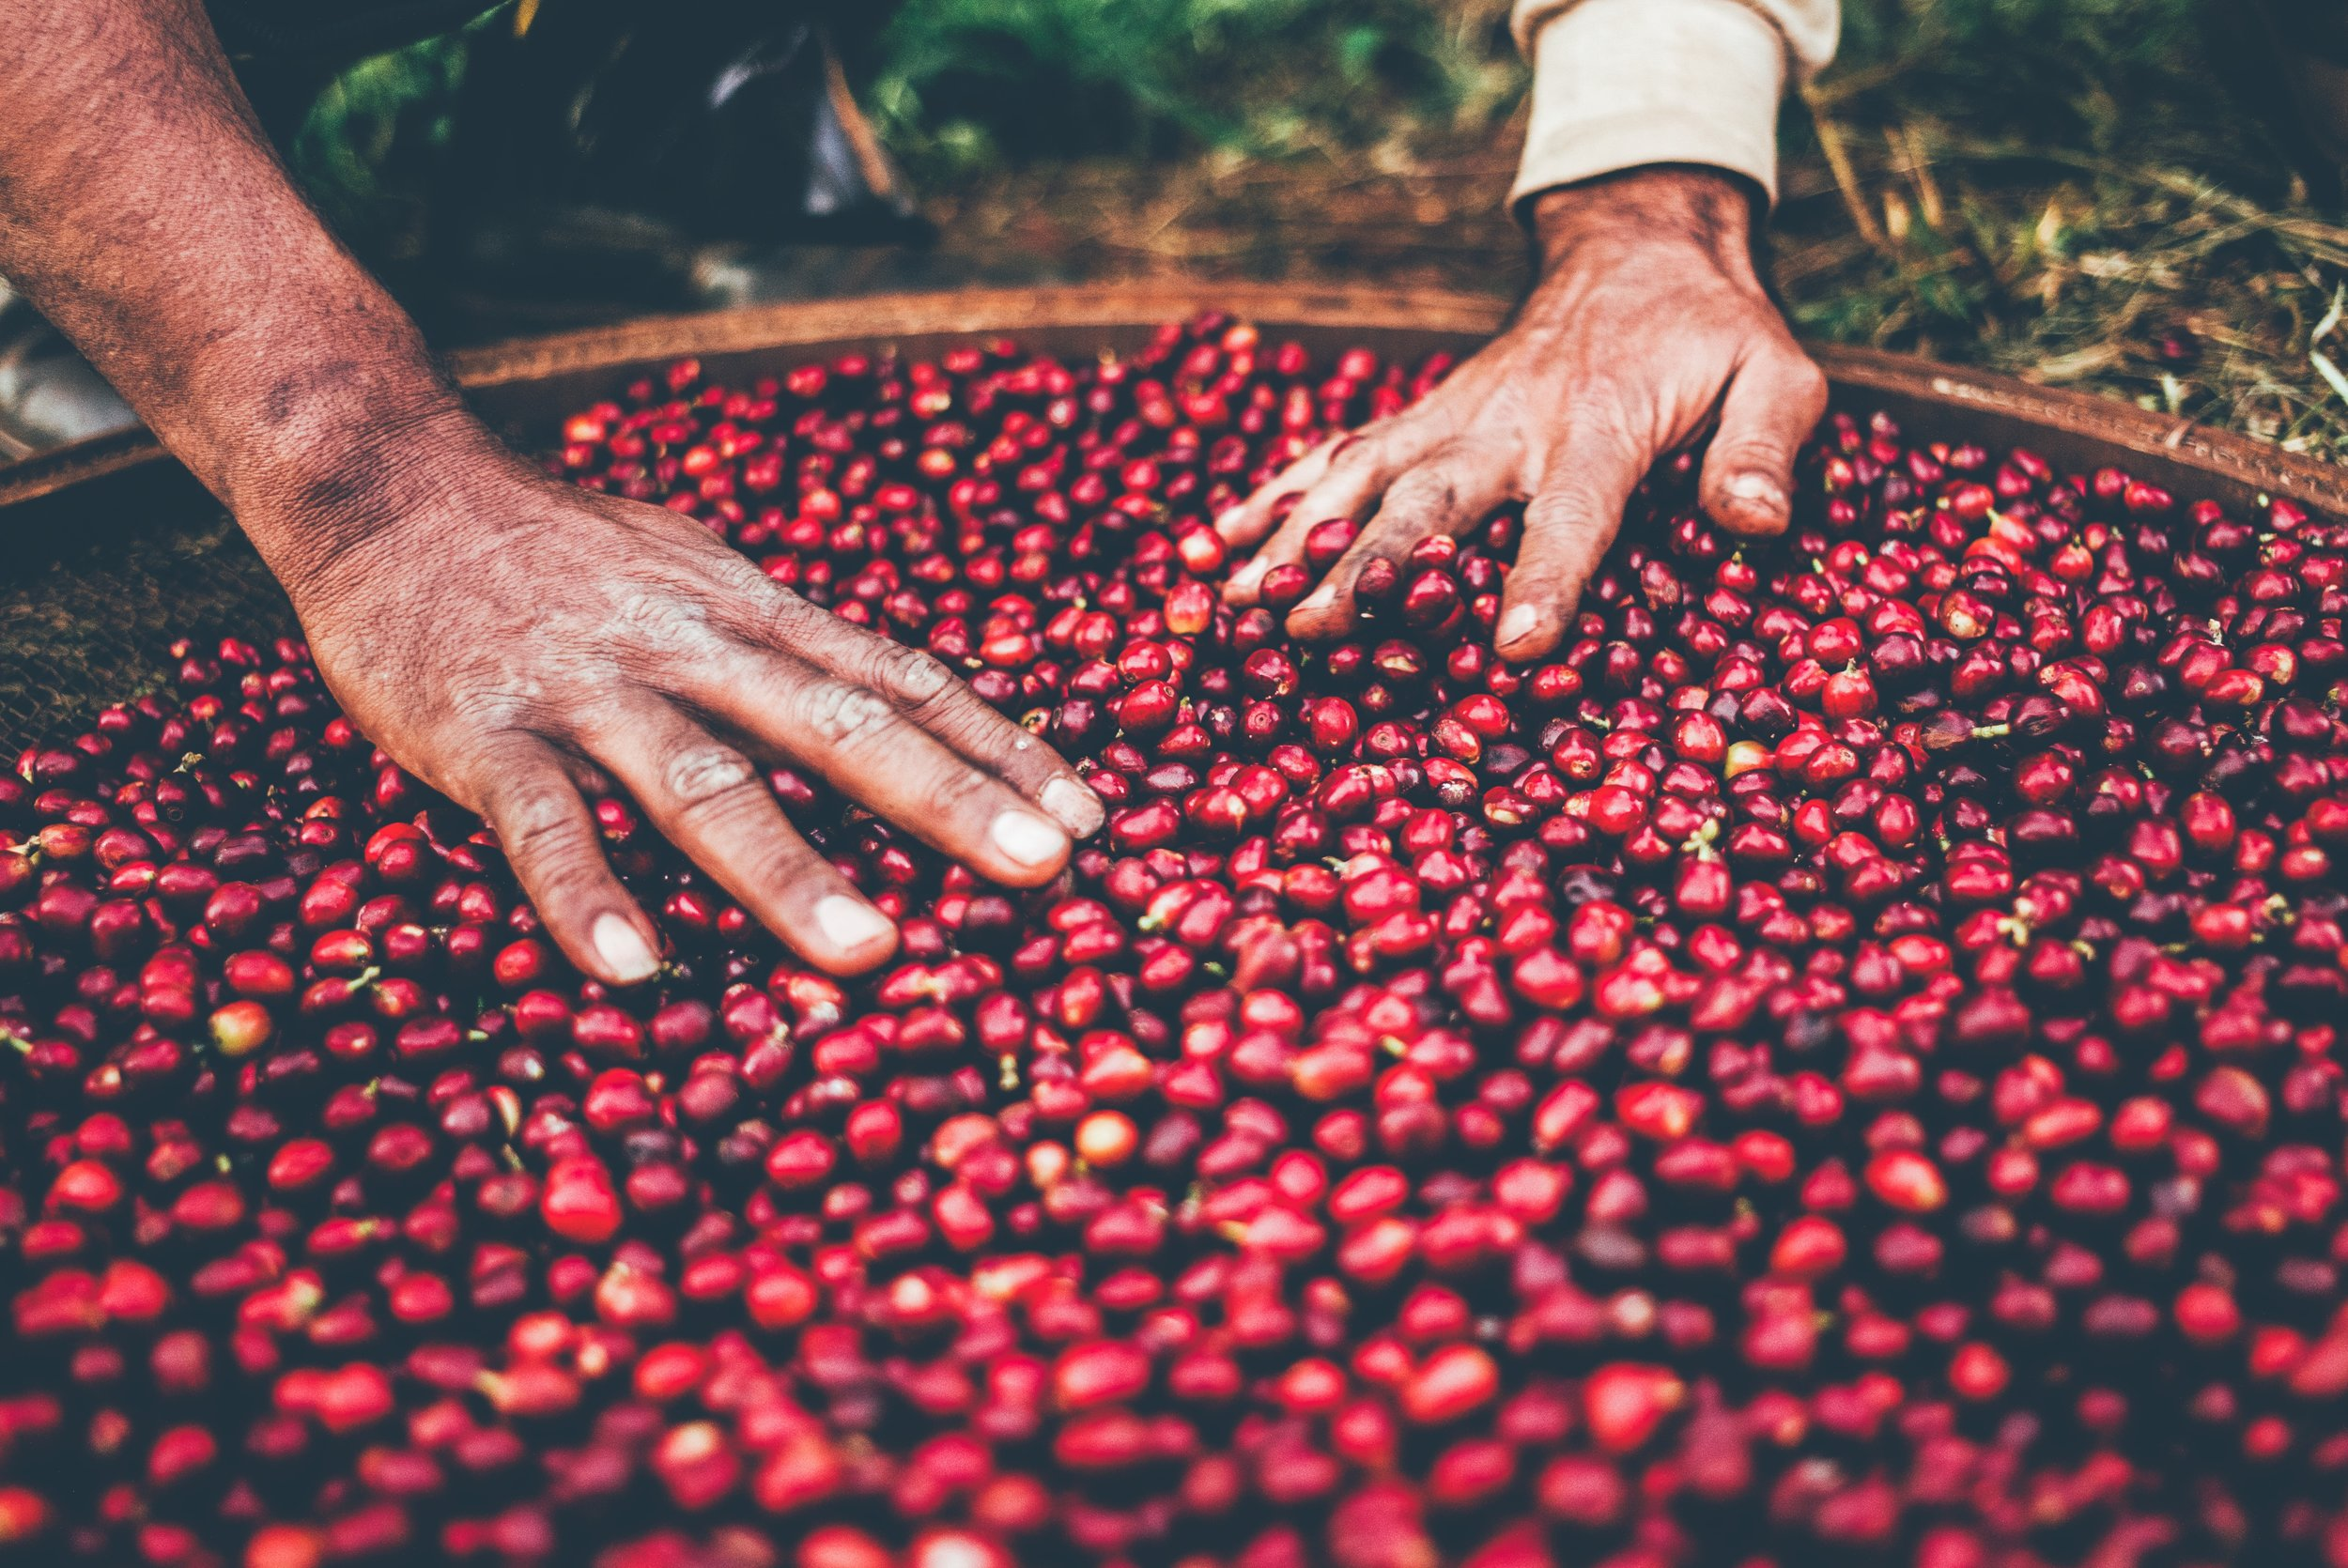 Who we ARE - Oro Group cares about all people devoted in coffee industry from seed to cup. Our goal is to achieve sustainability by building a strong relationship between coffee producers and the buyers not imposing any additional burdens such as third party commission.